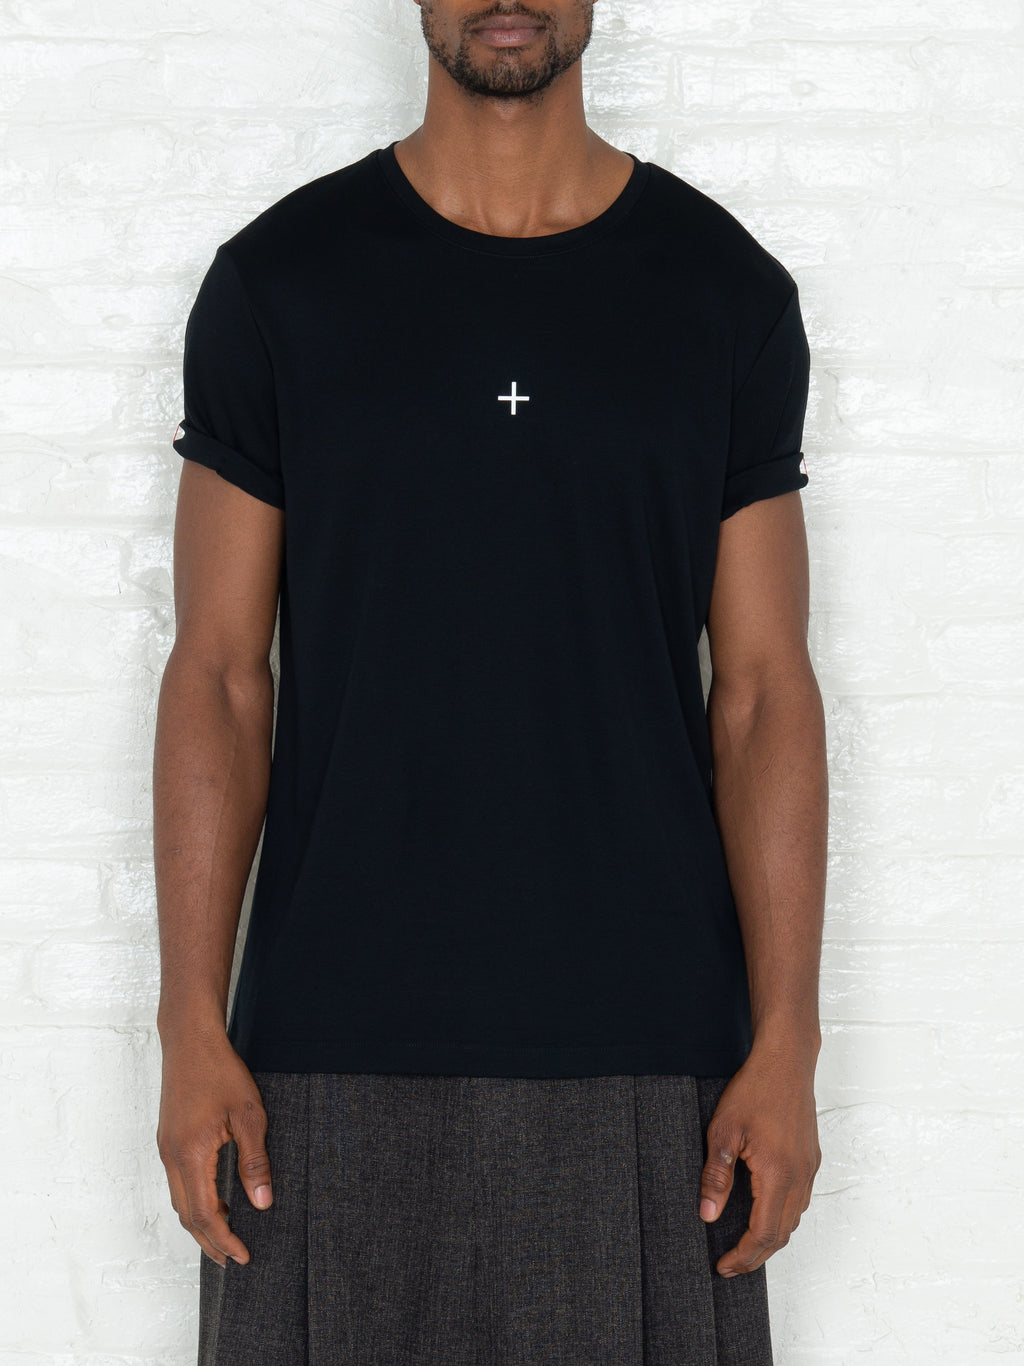 """Plus"" T-shirt in Black"